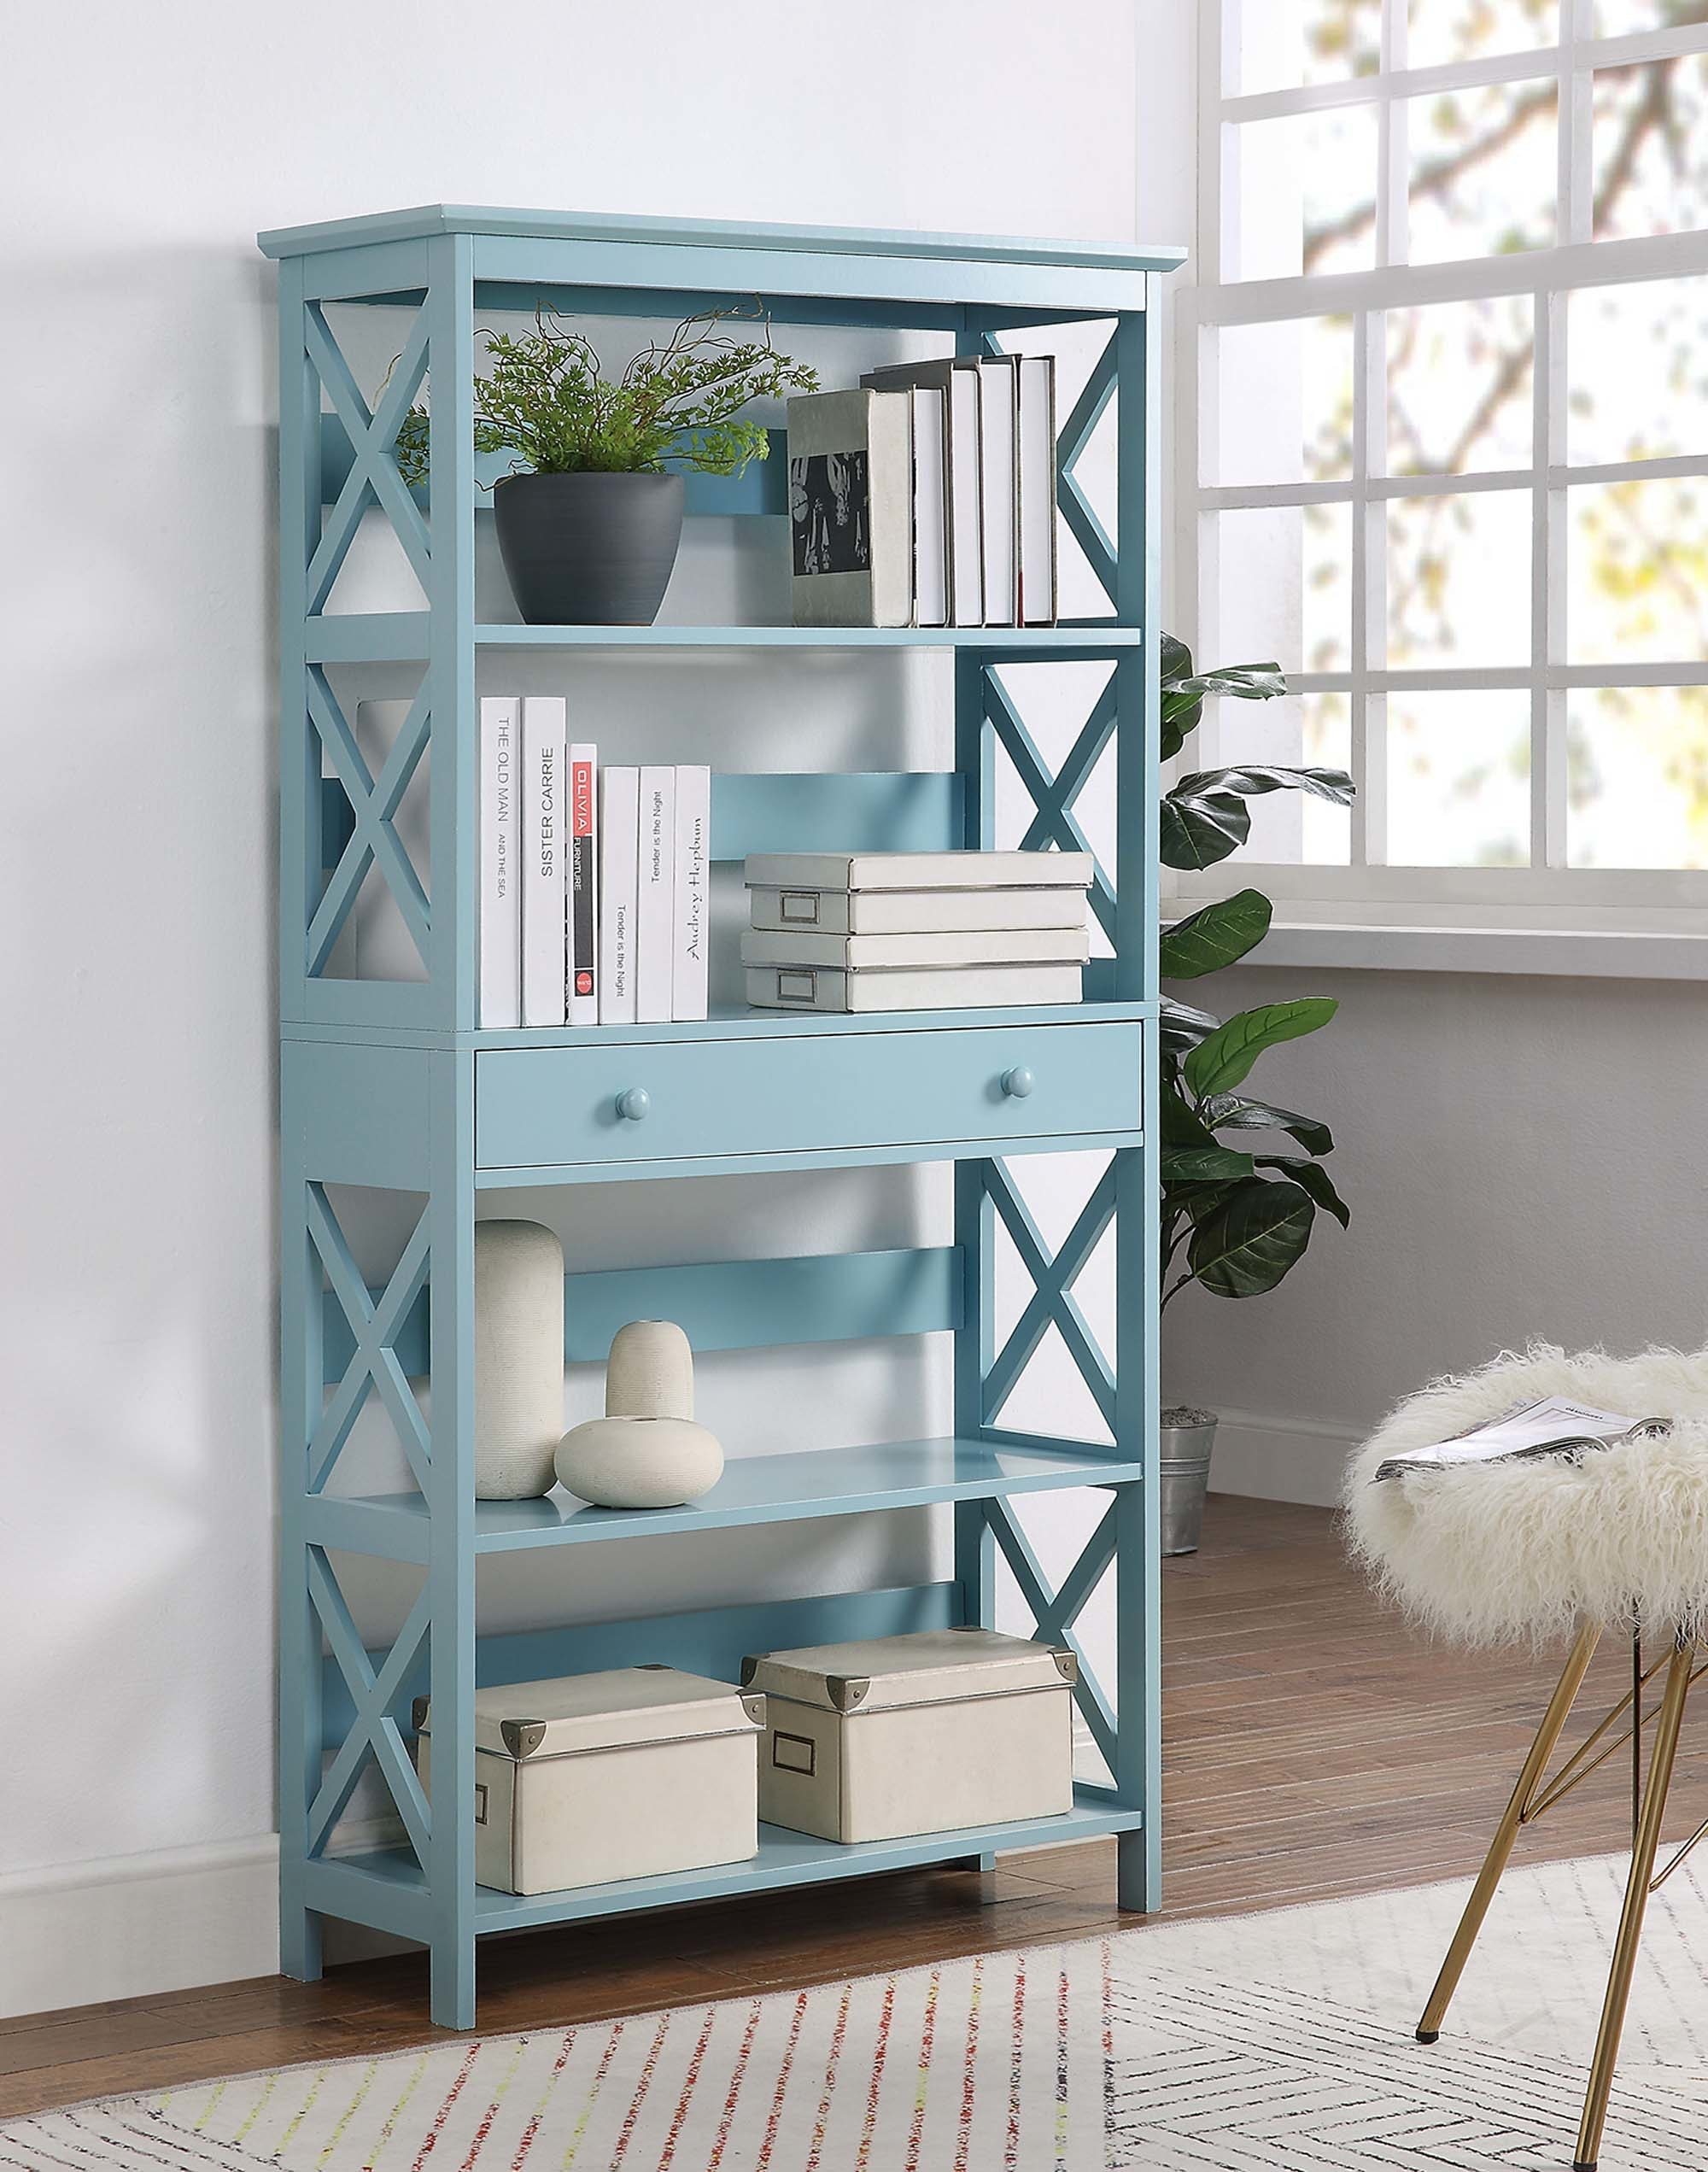 A sea-foam colored bookshelf with a drawer in the middle separating two shelves on the bottom and two on the top